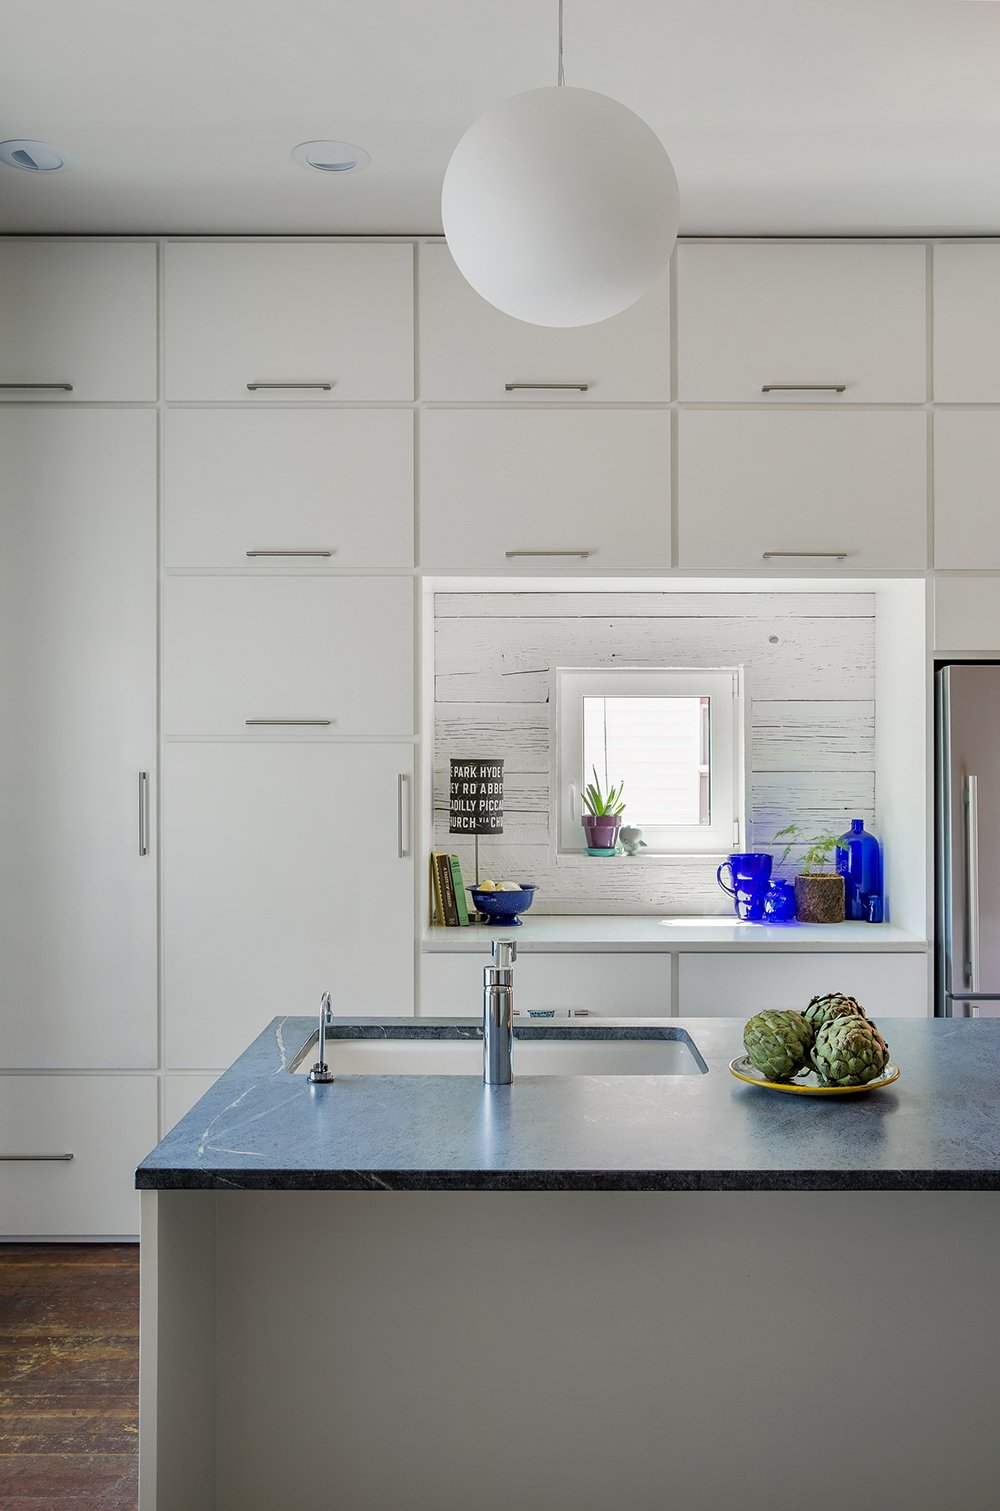 In addition to shelving for books, the architects dedicated plenty of space to storing groceries, kitchenware, and practical items.  A Bright Red Farmhouse-Style Home That's Surprisingly Modern Inside by Luke Hopping